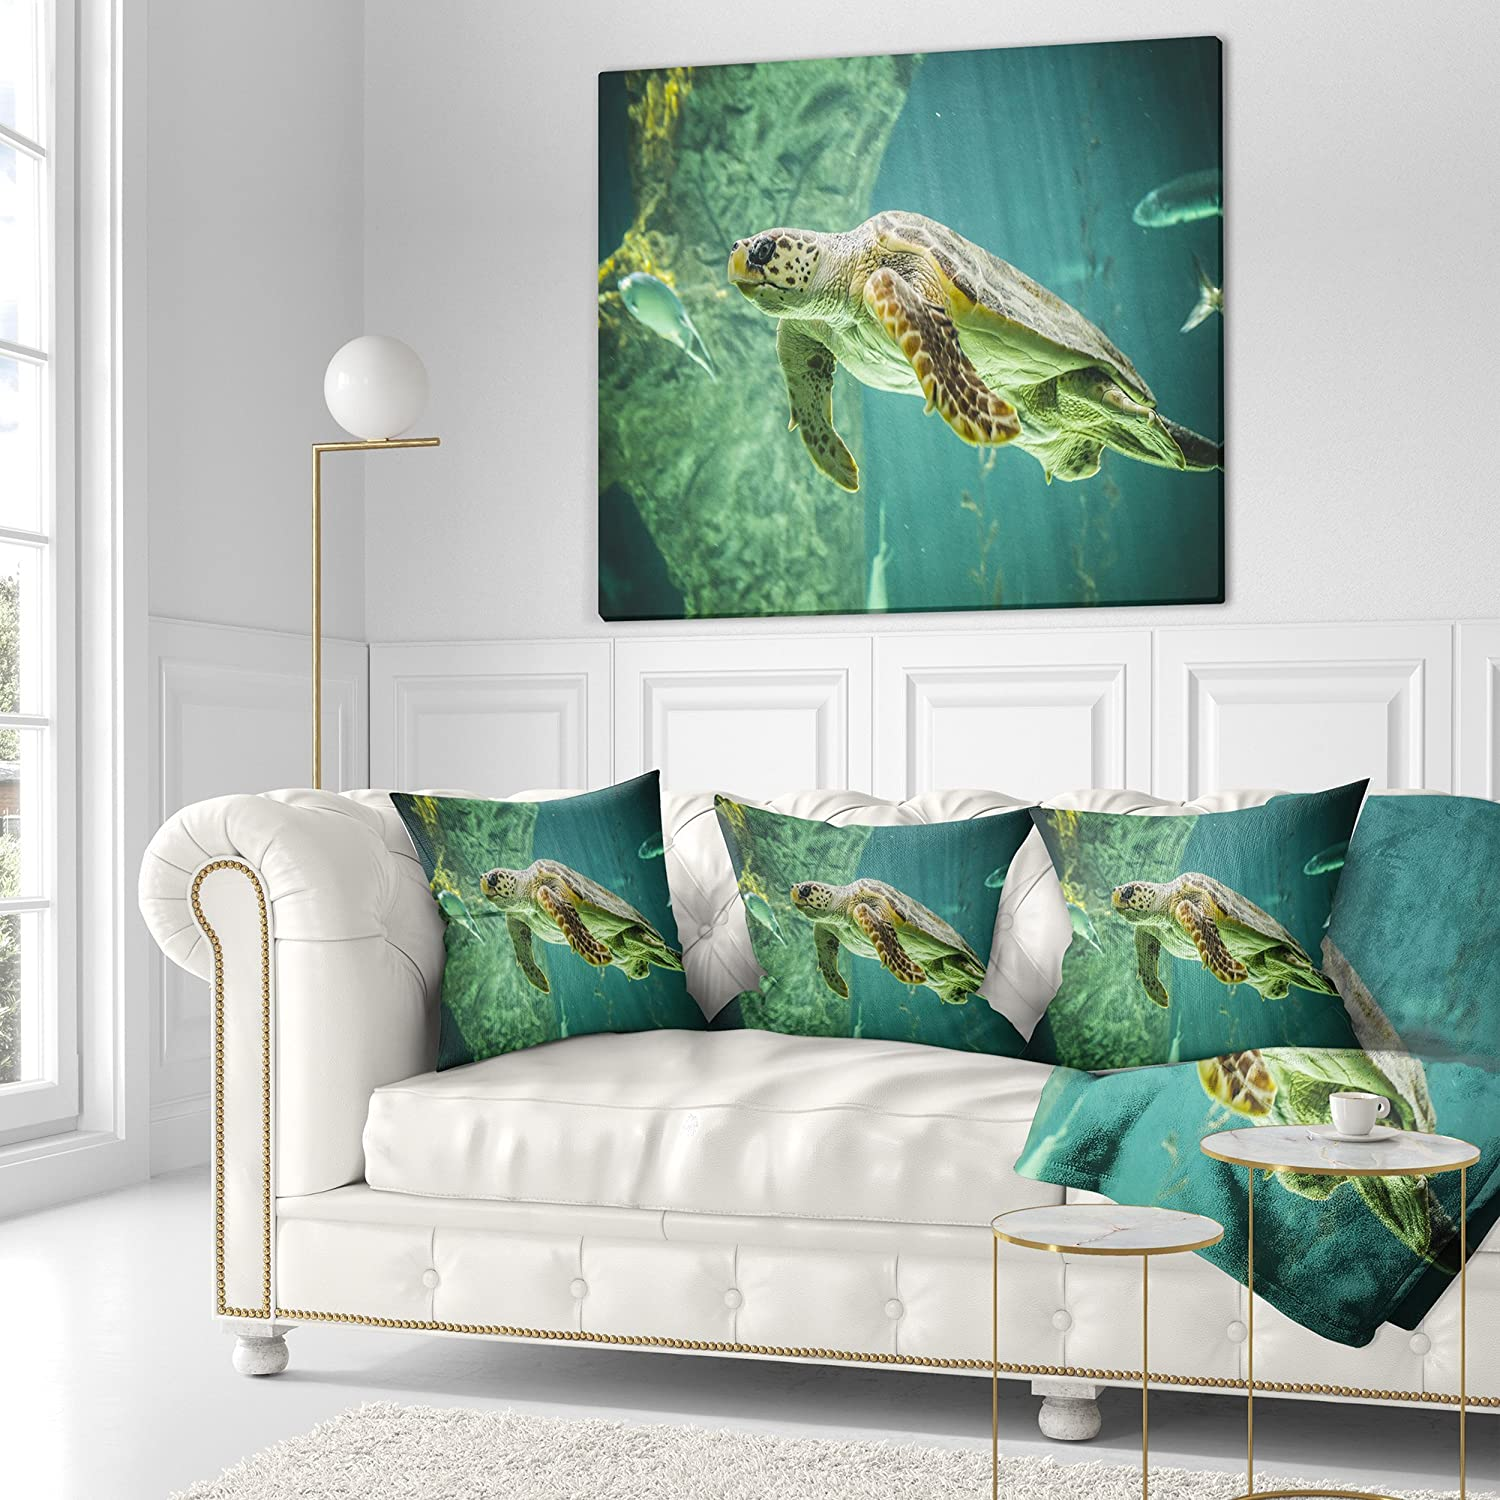 x 26 in Designart CU7815-26-26 Huge Turtle Swimming Animal Cushion Cover for Living Room Sofa Throw Pillow 26 in in Insert Printed On Both Side